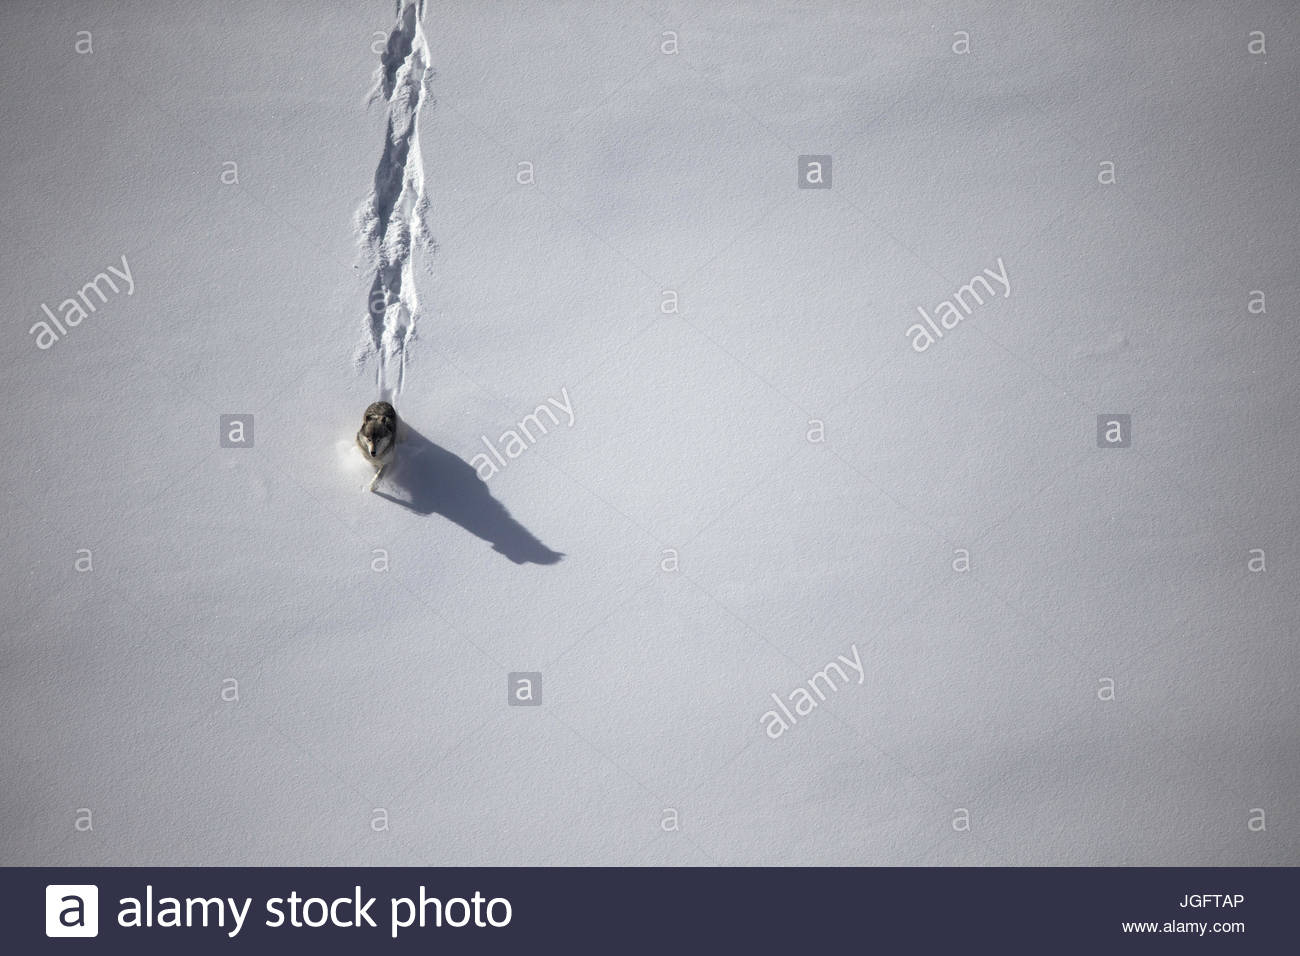 Ein grauer Wolf unterwegs im Wyoming Yellowstone National Park. Stockfoto